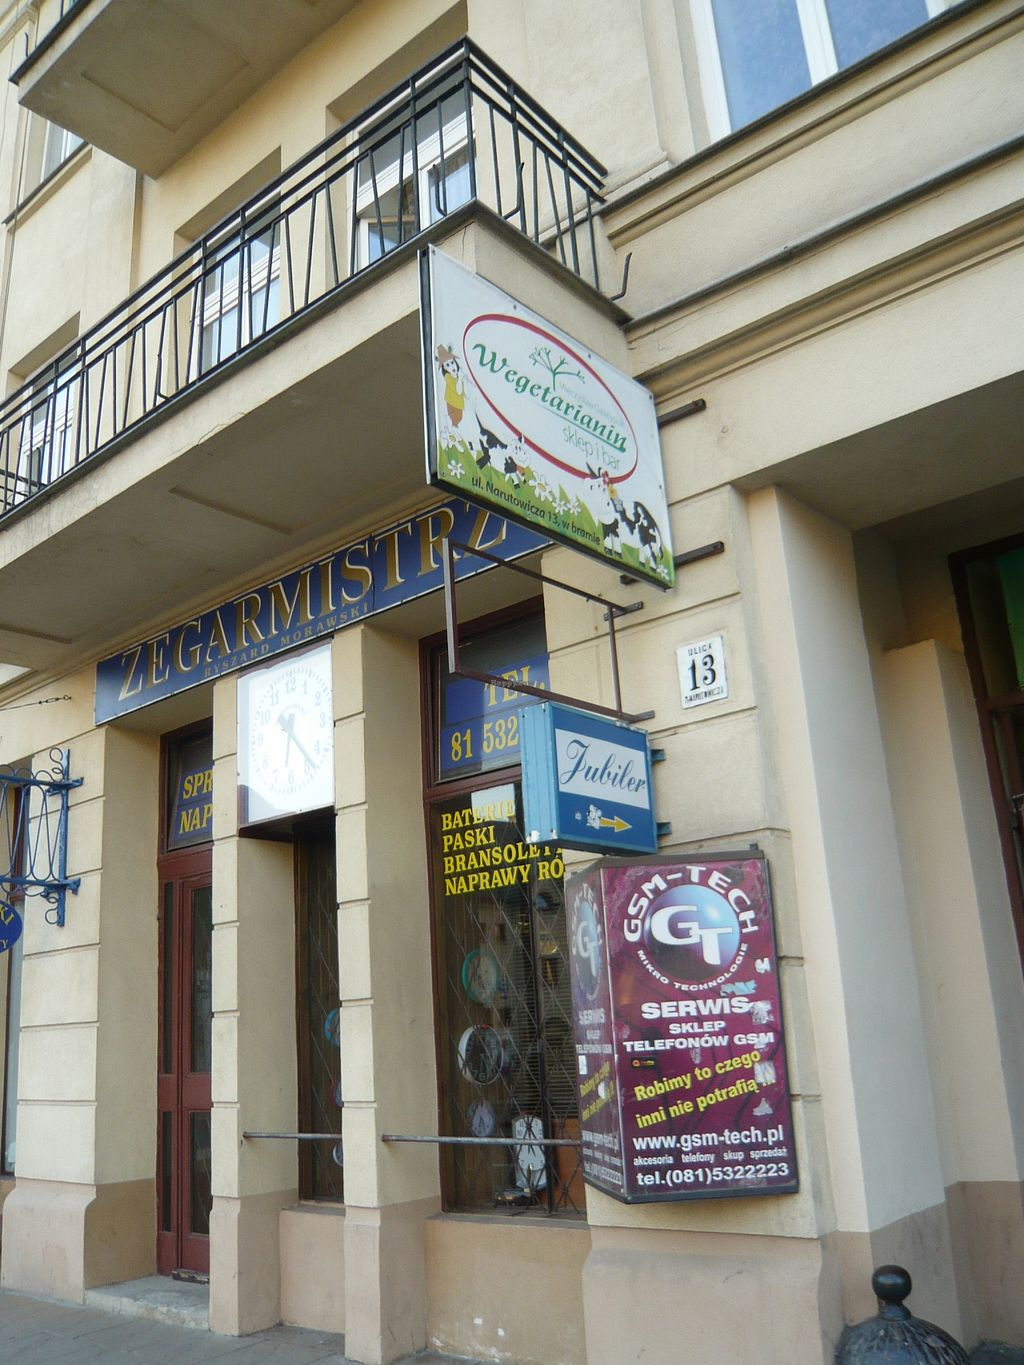 """Photo of Wegetarianin Bar Sklep  by <a href=""""/members/profile/travegi"""">travegi</a> <br/>the sign from the street <br/> August 31, 2015  - <a href='/contact/abuse/image/11018/116036'>Report</a>"""